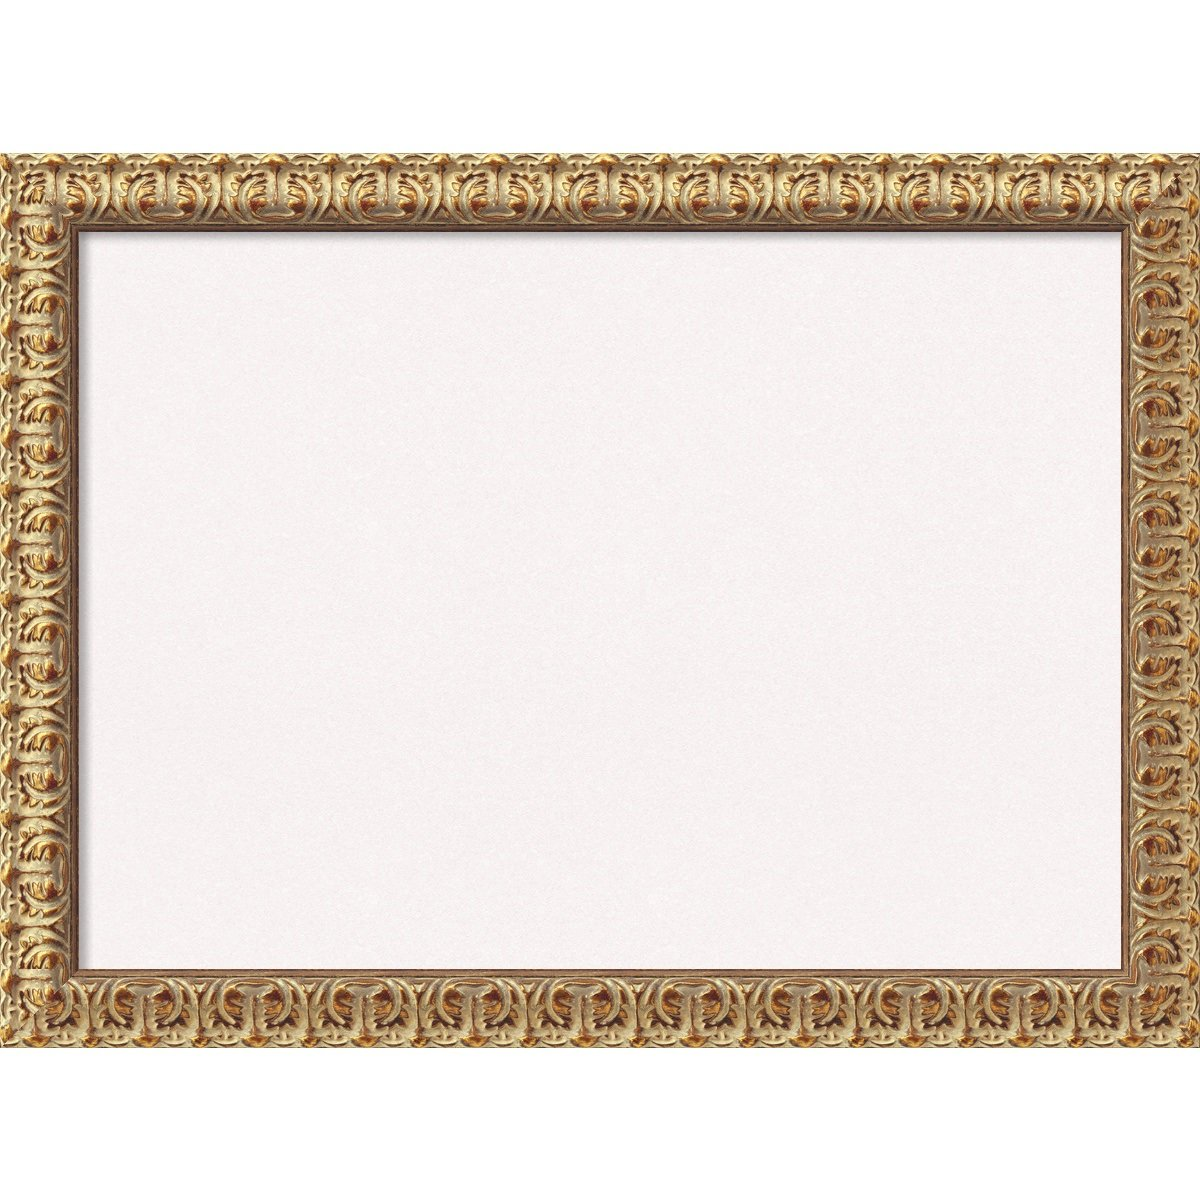 Amanti Art Framed White Cork Board Florentine Gold: Outer Size 32 x 24'', Large